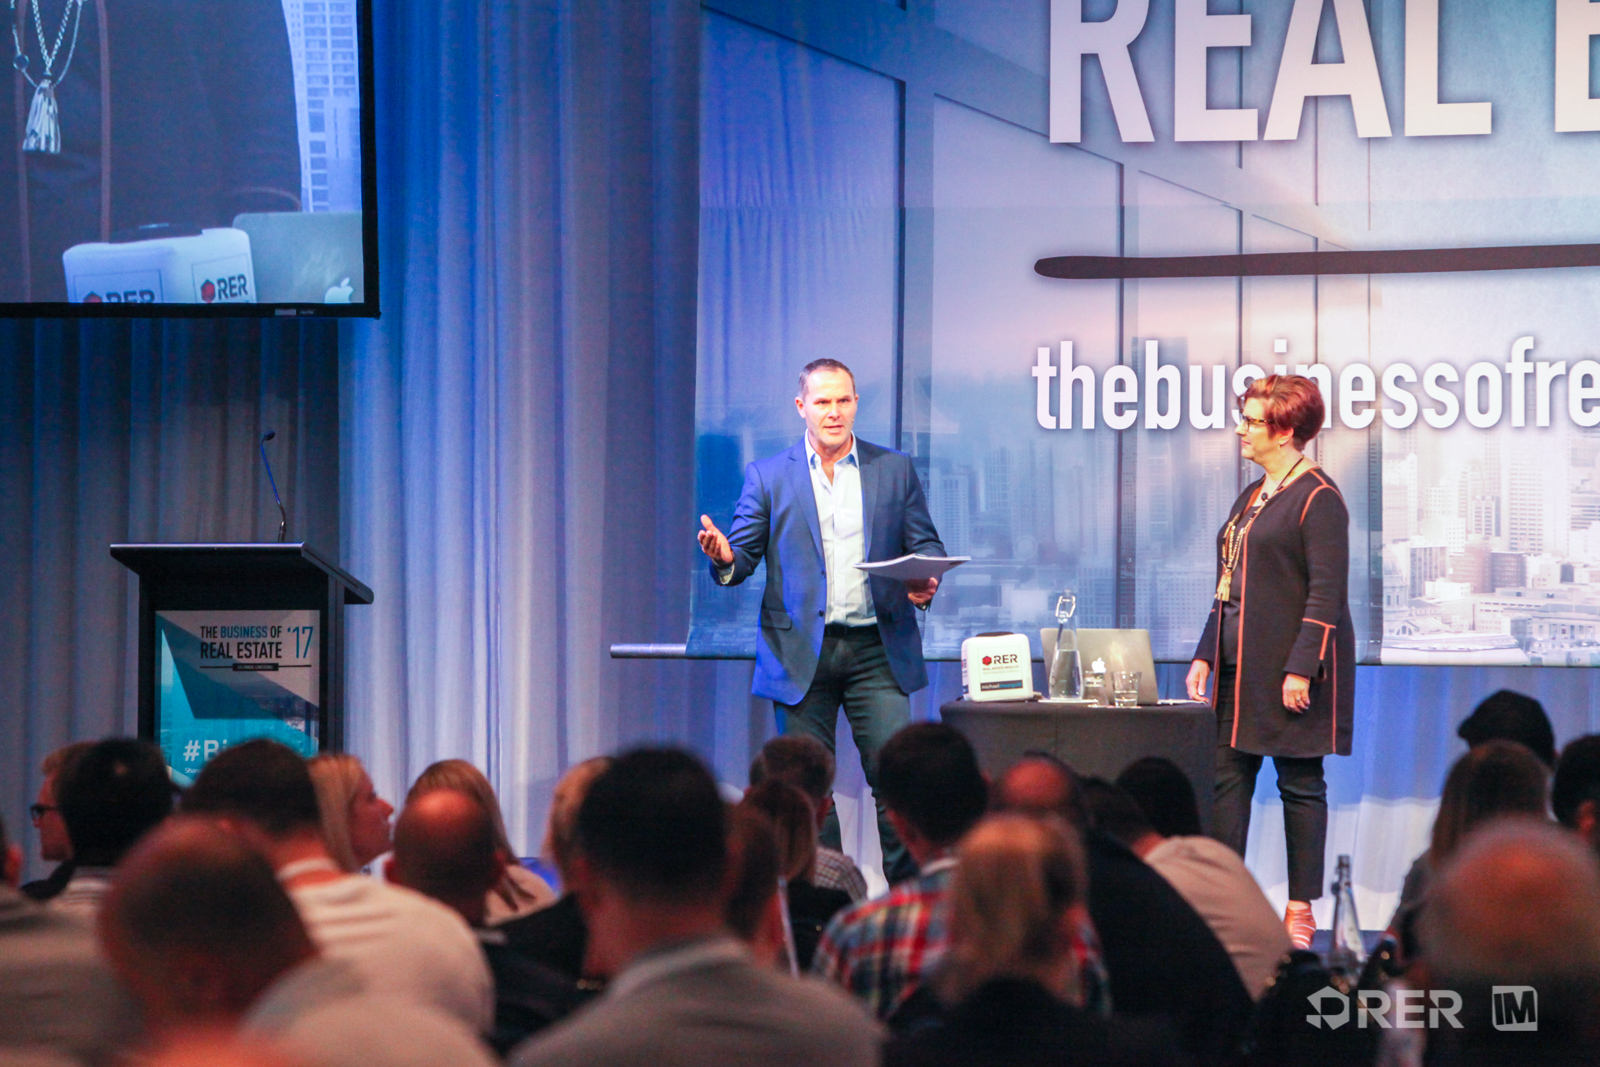 https://www.thebusinessofrealestate.com.au/wp-content/uploads/2017/09/39342_RER_THE_BUSINESS_OF_REAL_ESTATE_DAY1_LR-70.jpg